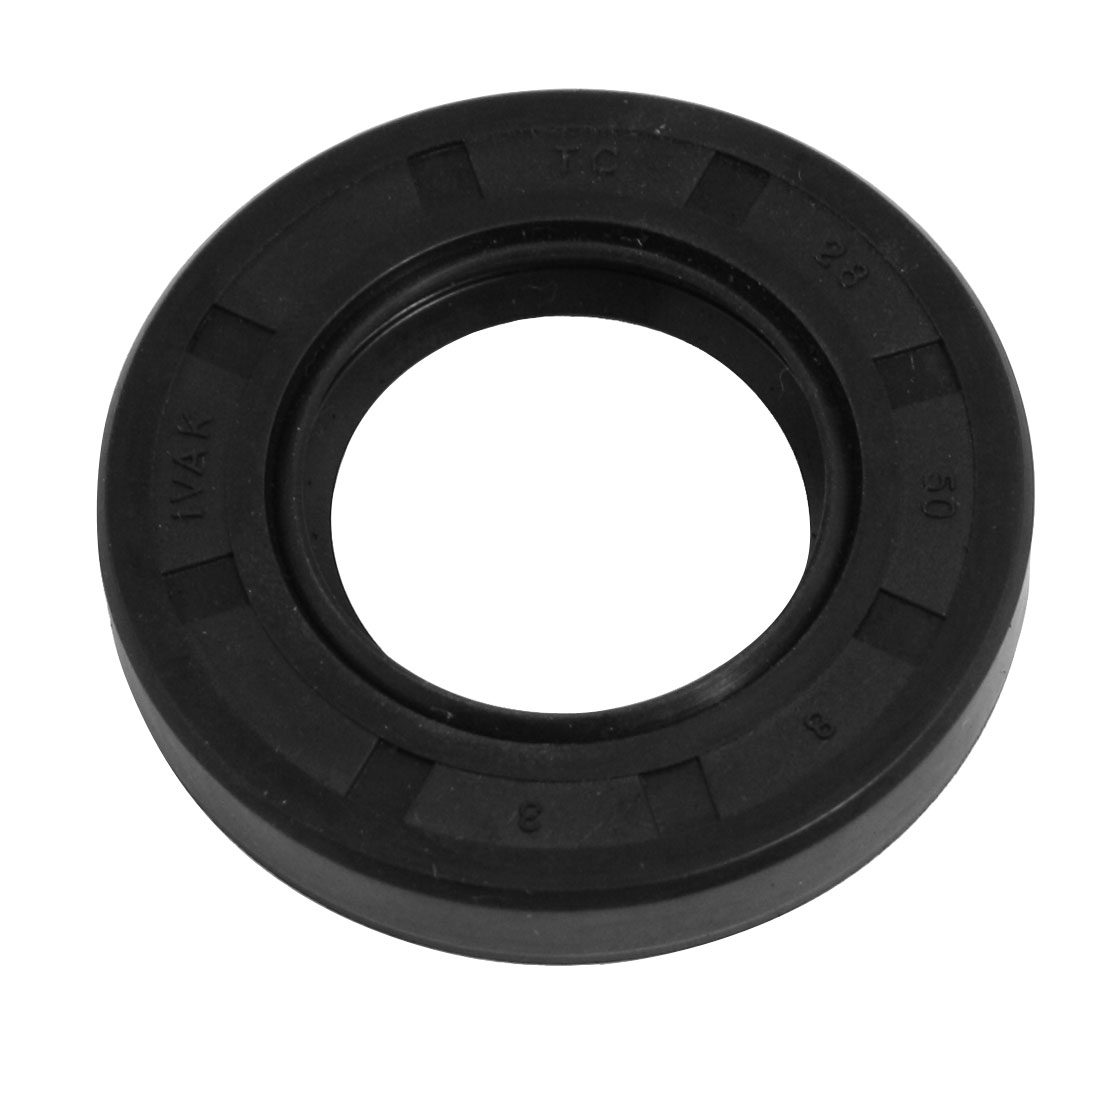 Black Nitrile Rubber Double Lip TC Oil Shaft Seal 28mm x 50mm x 8mm